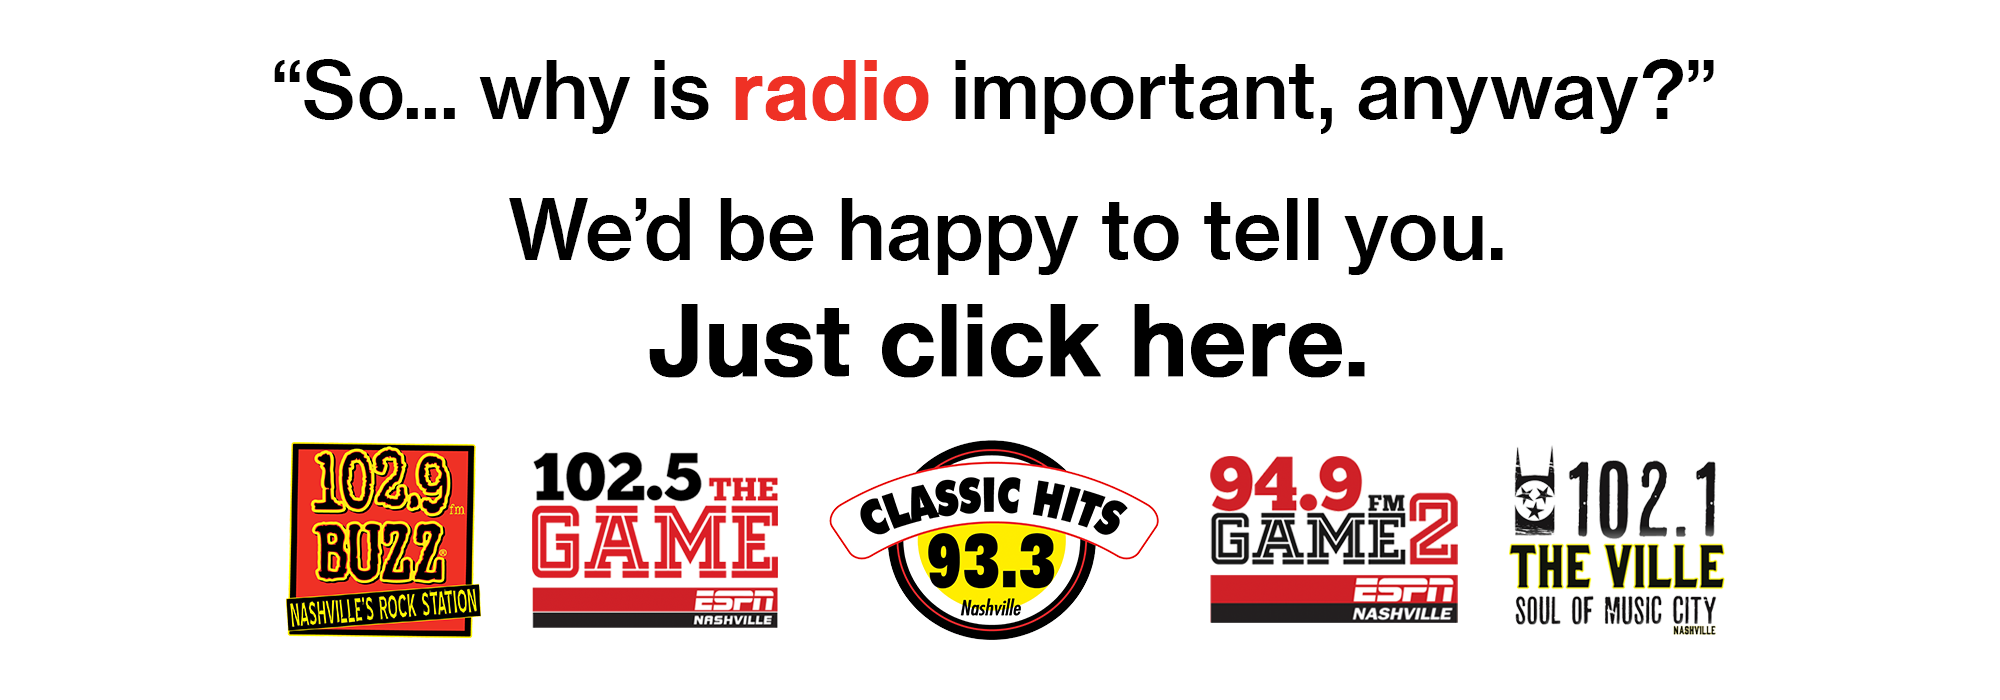 Feature: http://www.933classichits.com/advertising